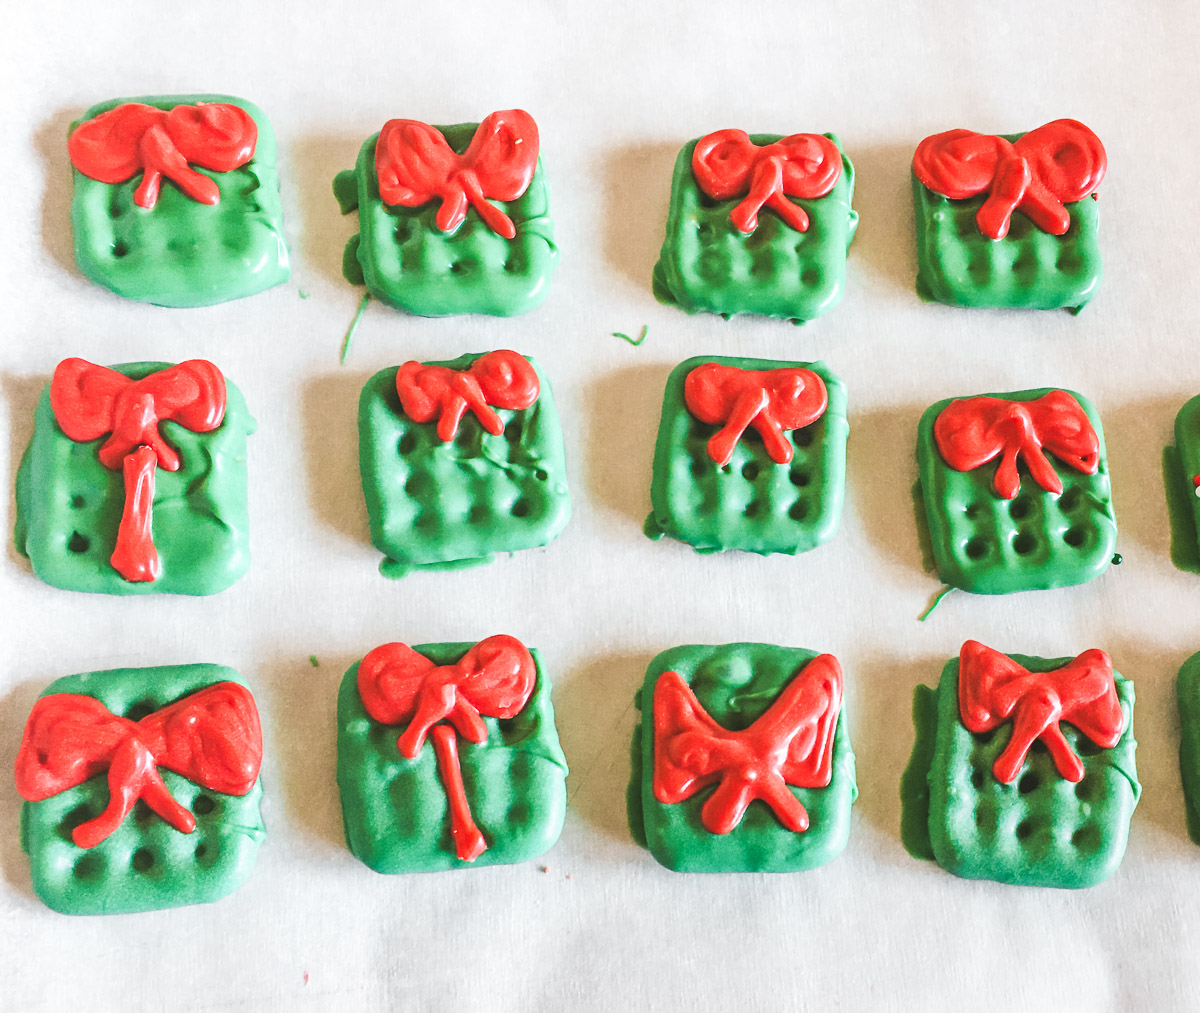 Christmas pretzels decorated like gift boxes with bows laying on parchment paper drying